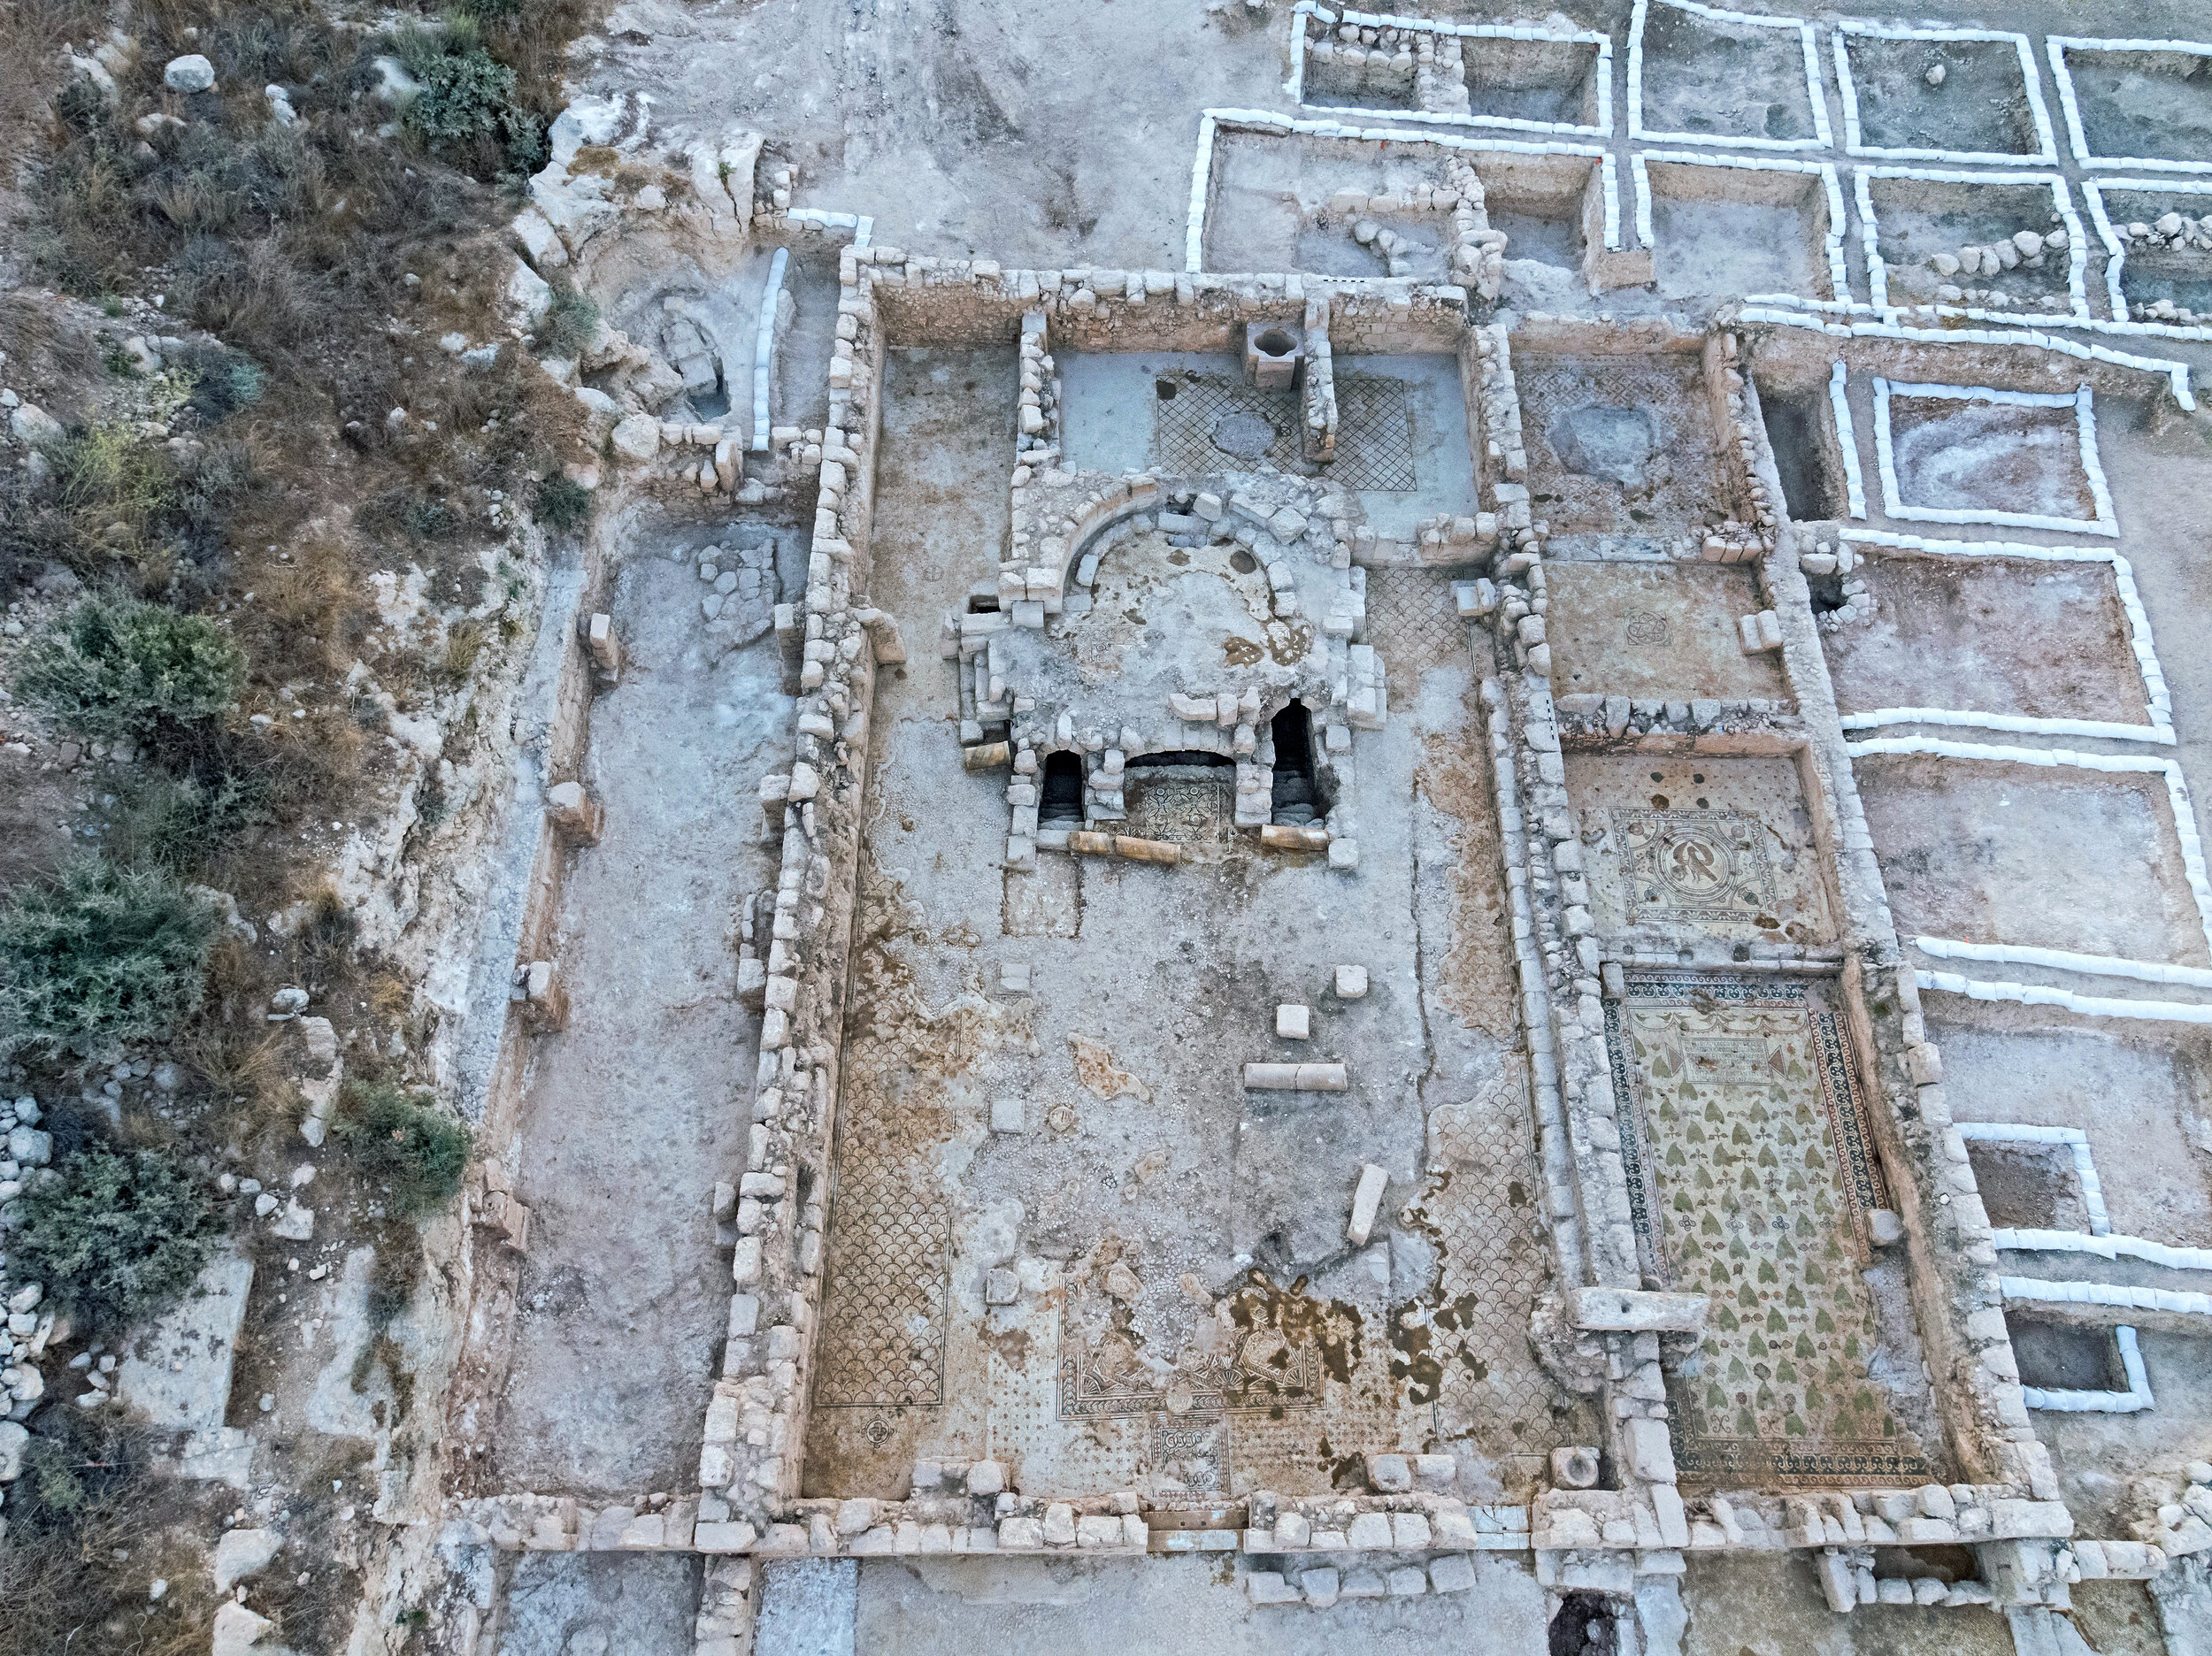 The church complex exposed at Ramat Beit Shemesh. Photo: Assaf Peretz, Courtesy of the Israel Antiquities Authority.